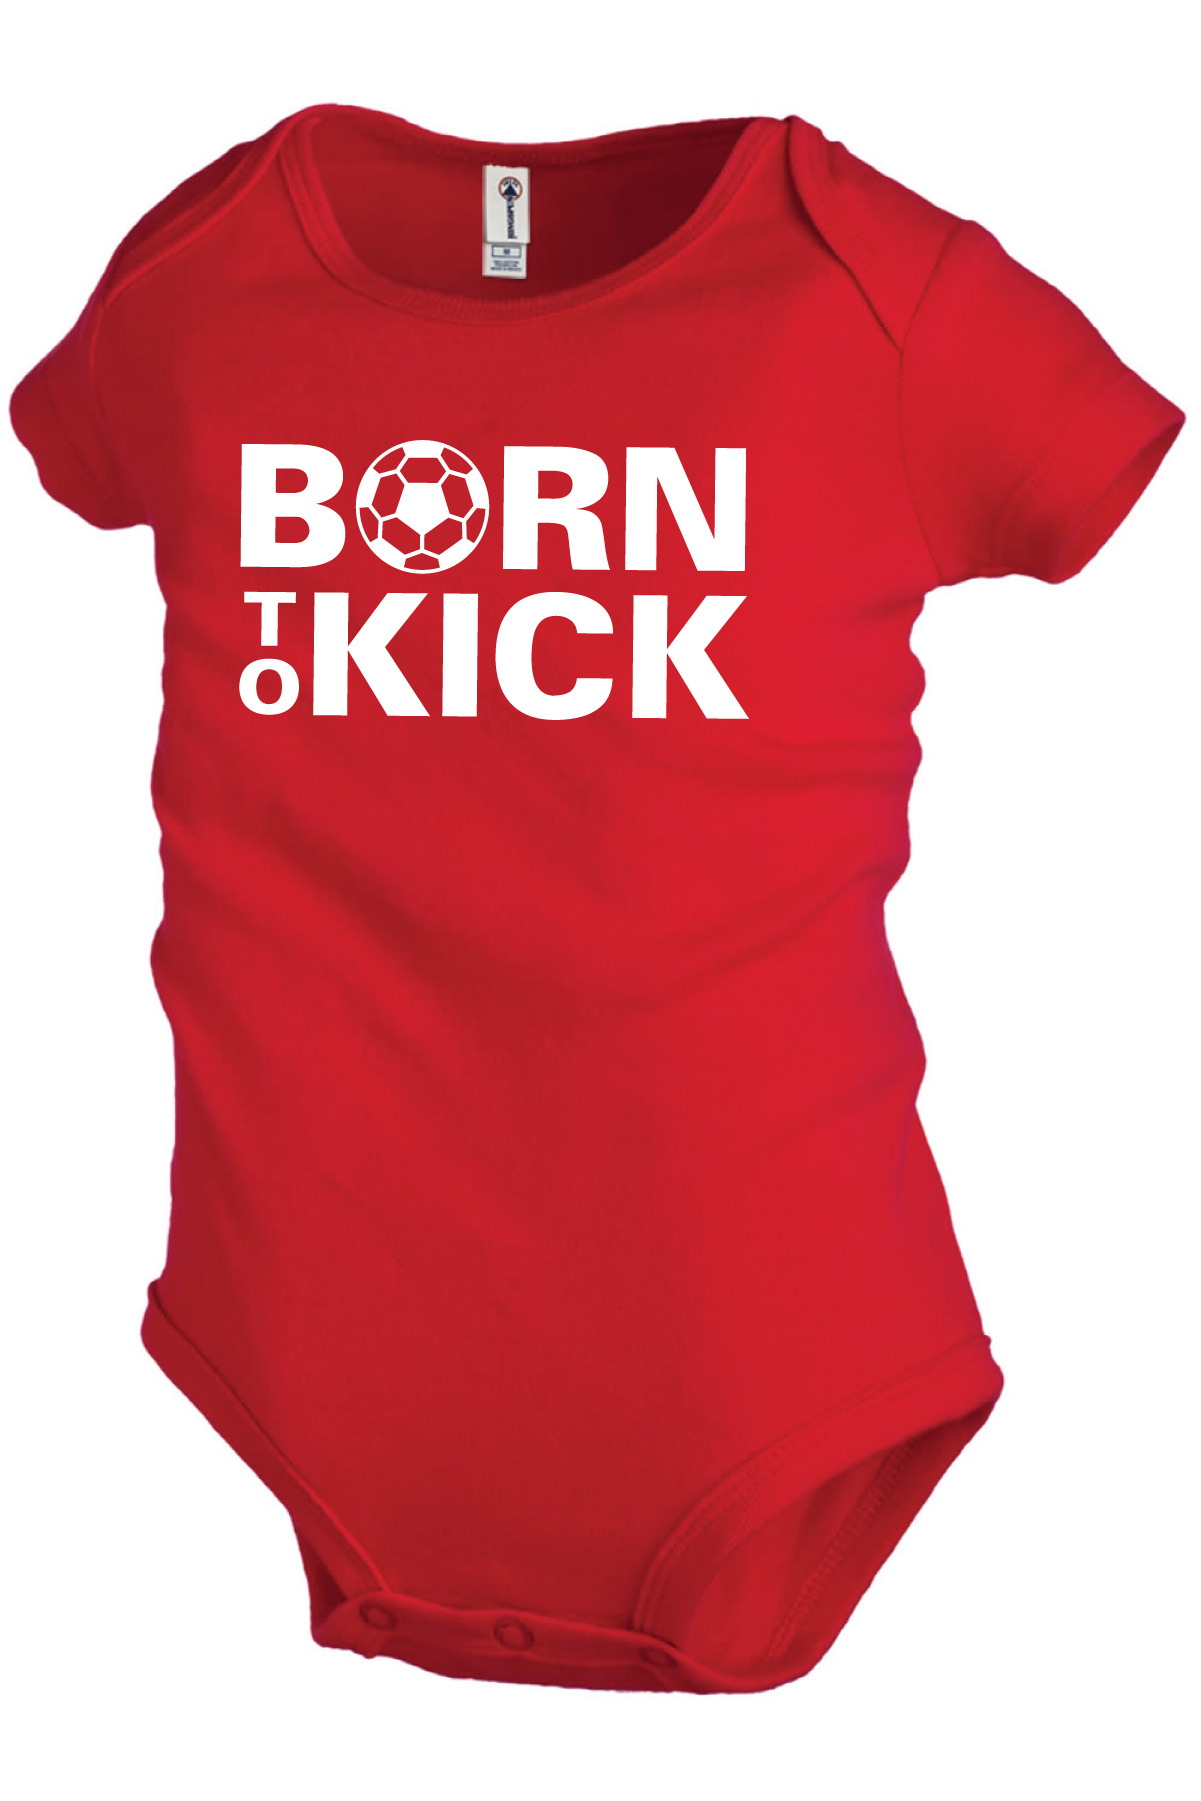 Born To Kick soccer baby onesie in red by Code Four Athletics